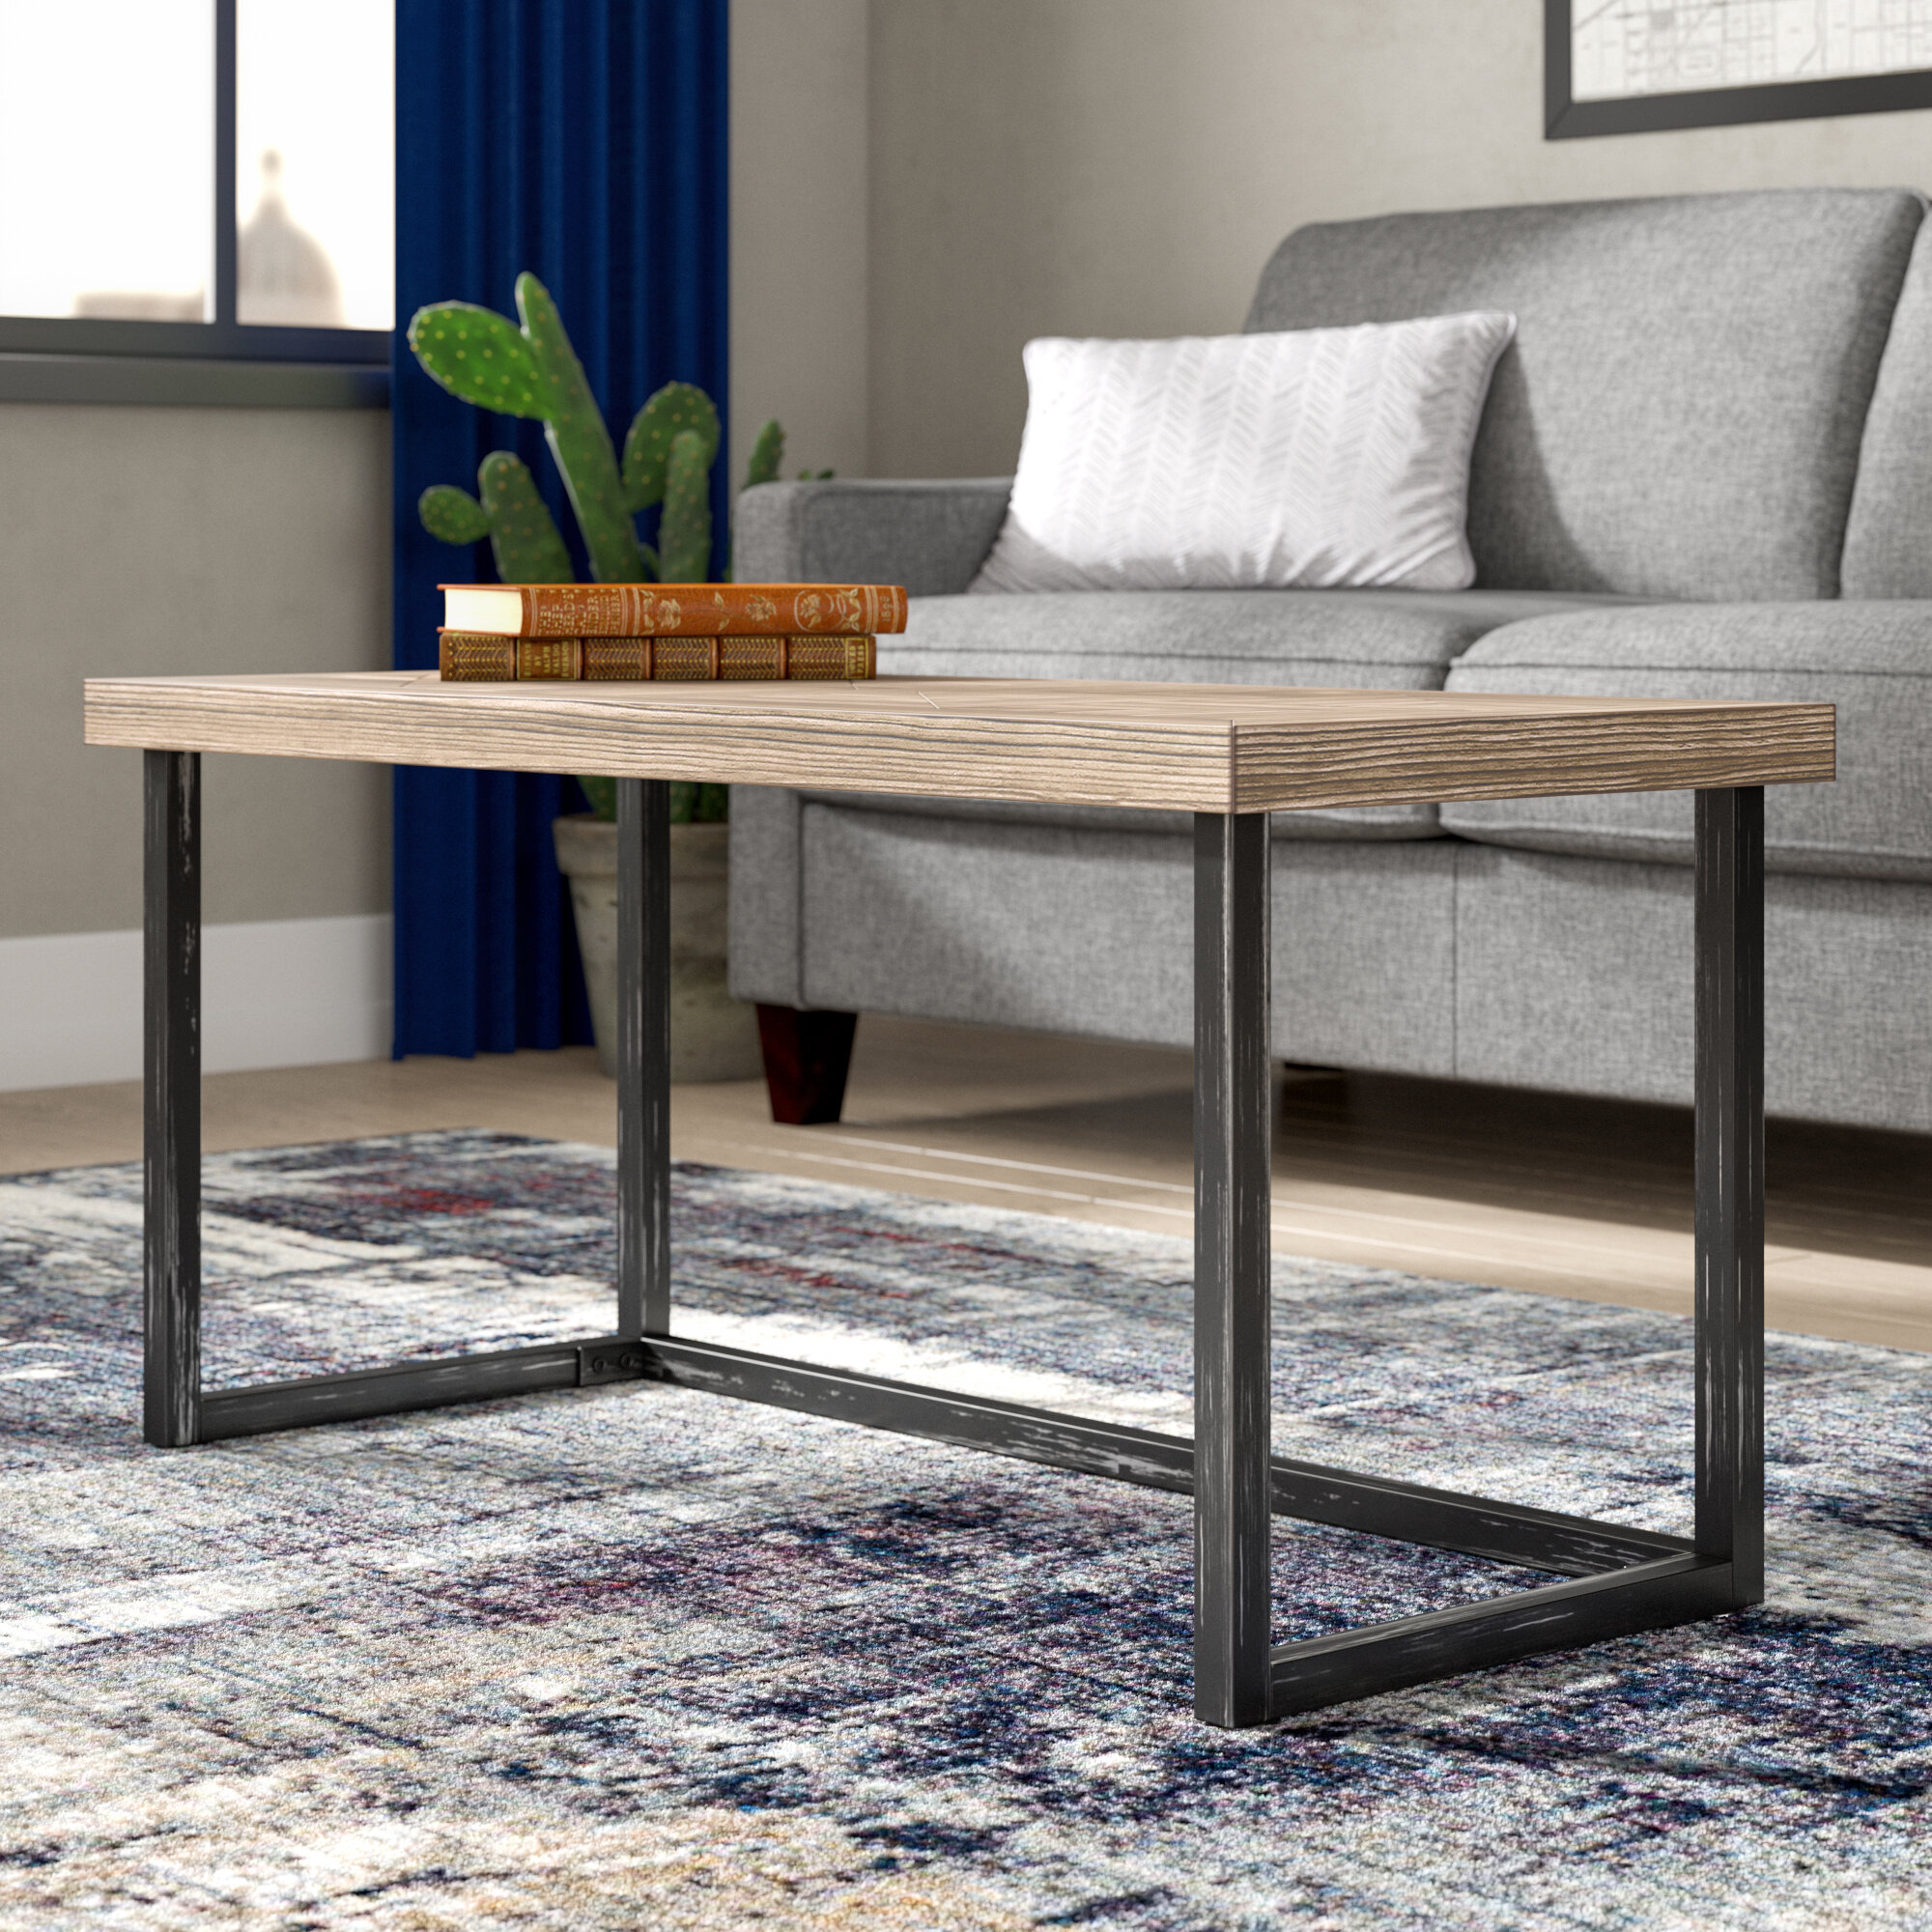 Merveilleux Adalheid Parquet Coffee Table